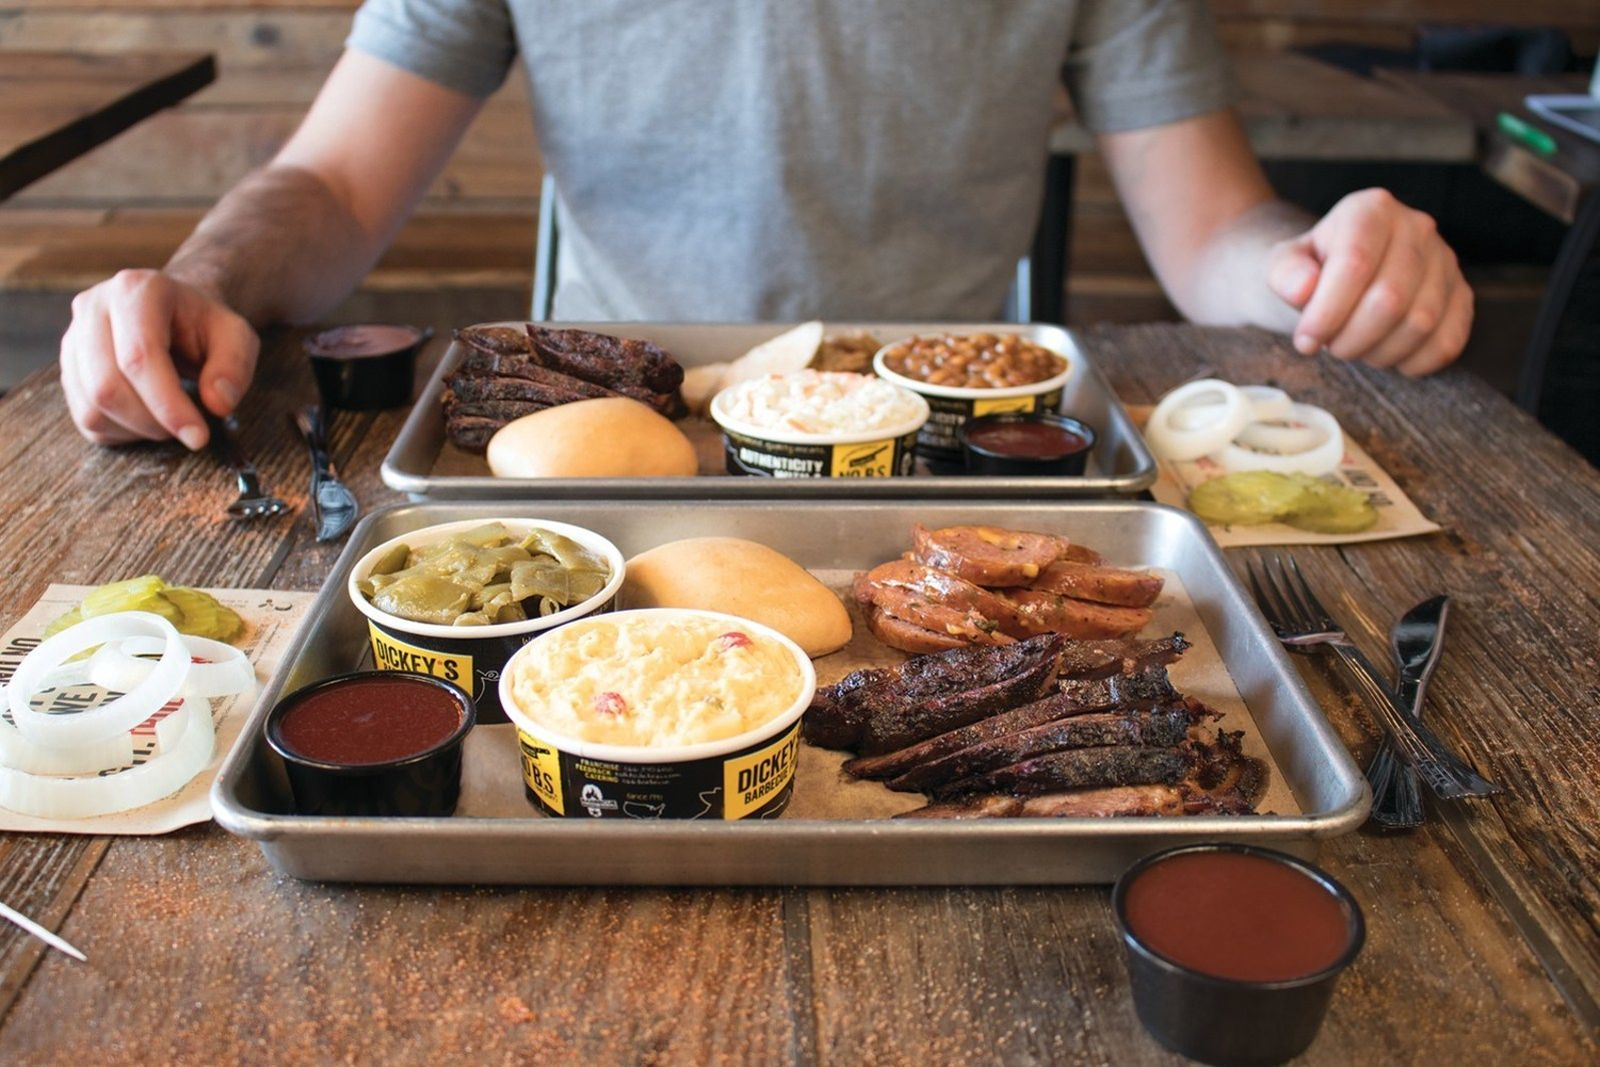 Dickey's Barbecue Pit Offers Delicious Dinner Special for Two